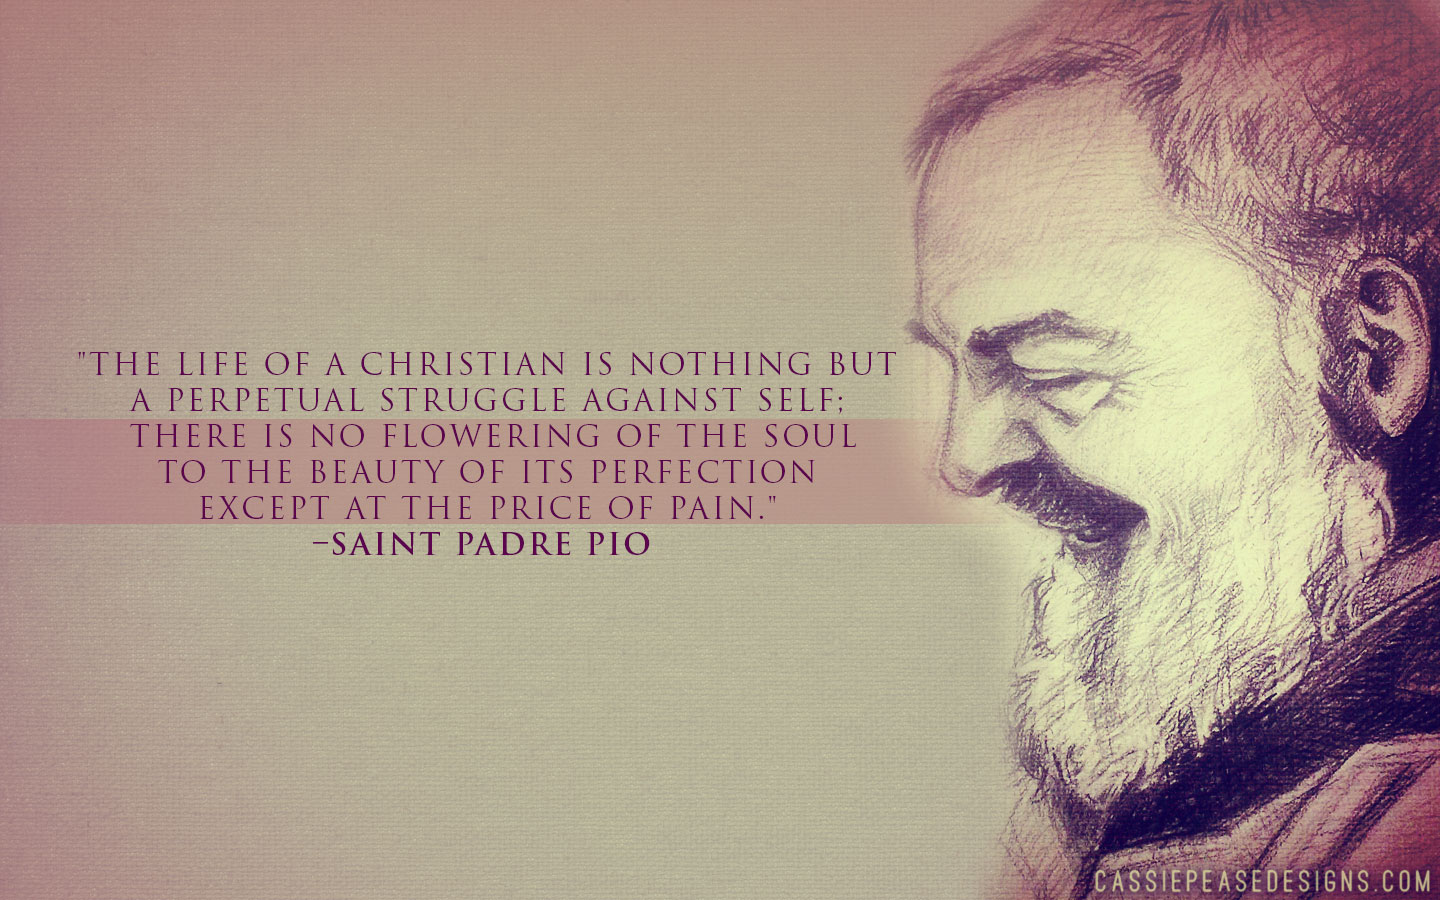 Christian Quote Wallpaper Desktop St Padre Pio Desktop Wallpaper Cassie Pease Designs